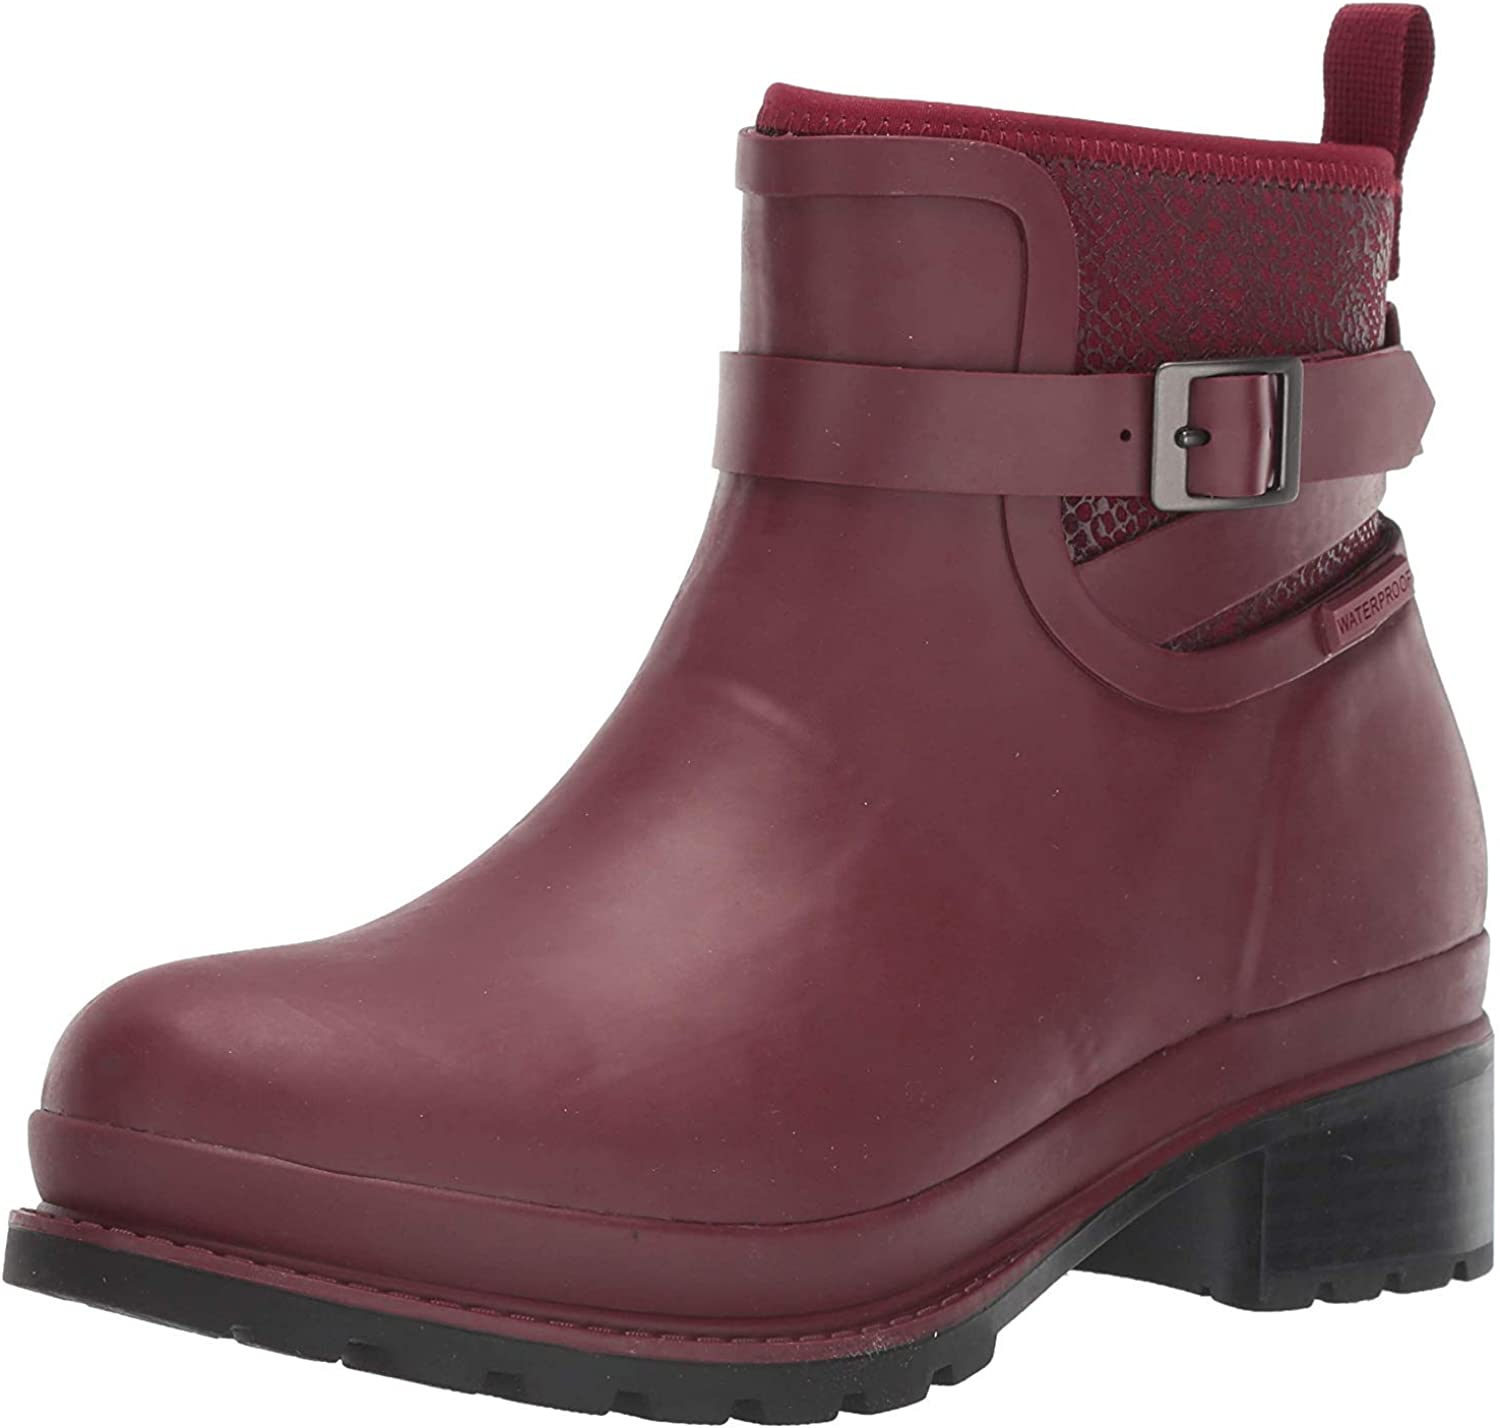 SEAL limited product Muck Boot Women's Ankle Liberty Rubber specialty shop